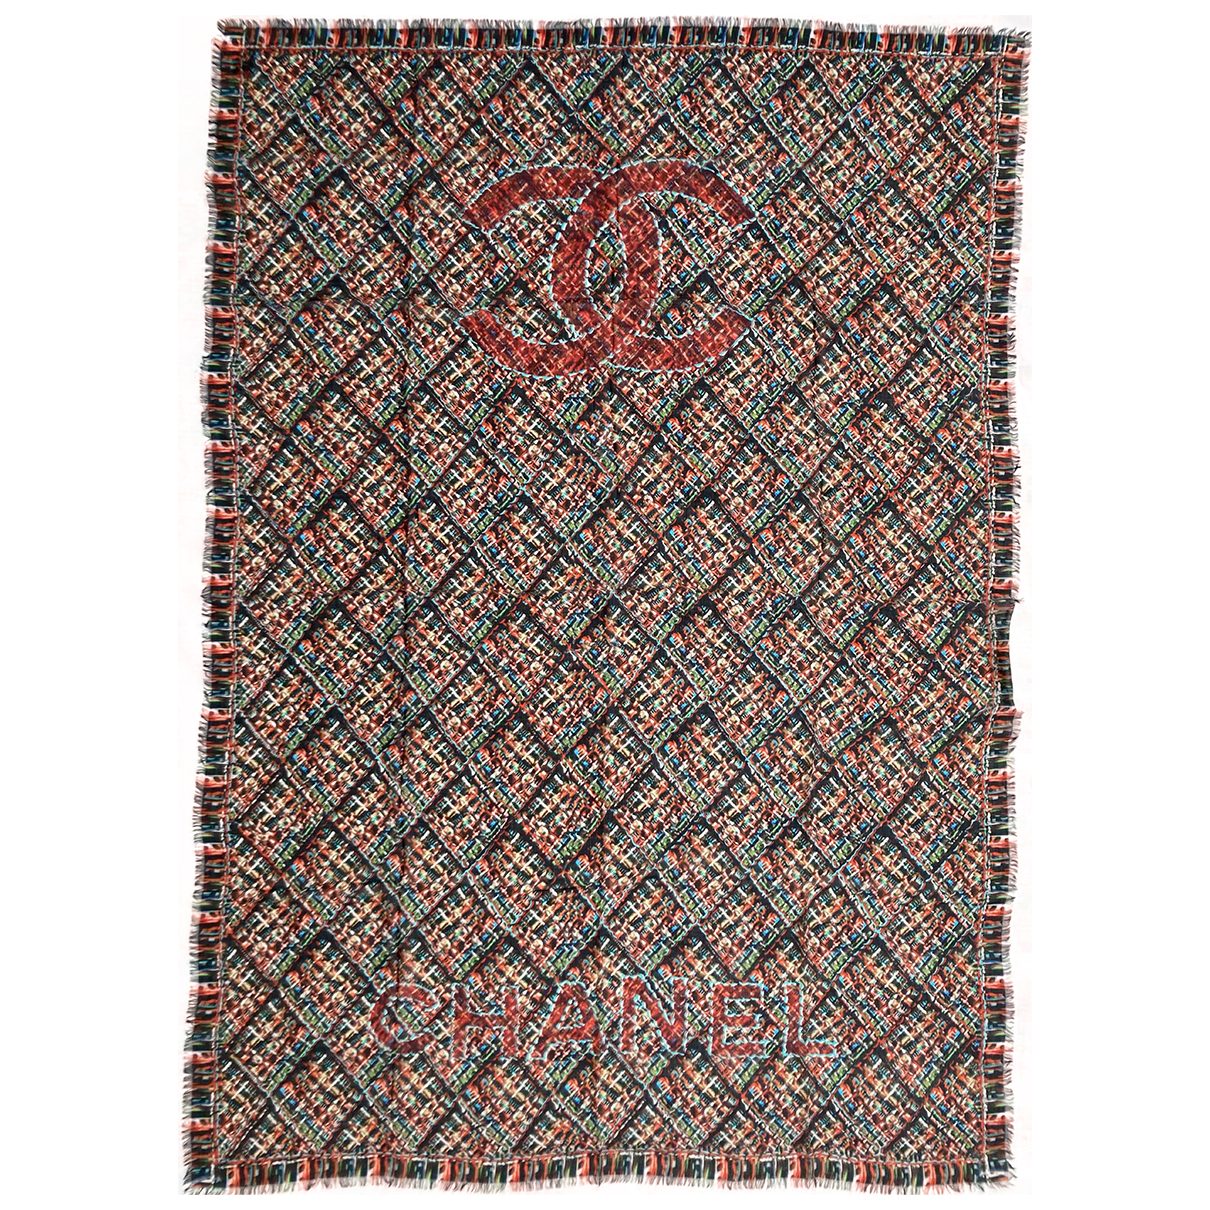 Chanel N Multicolour Cashmere scarf for Women N